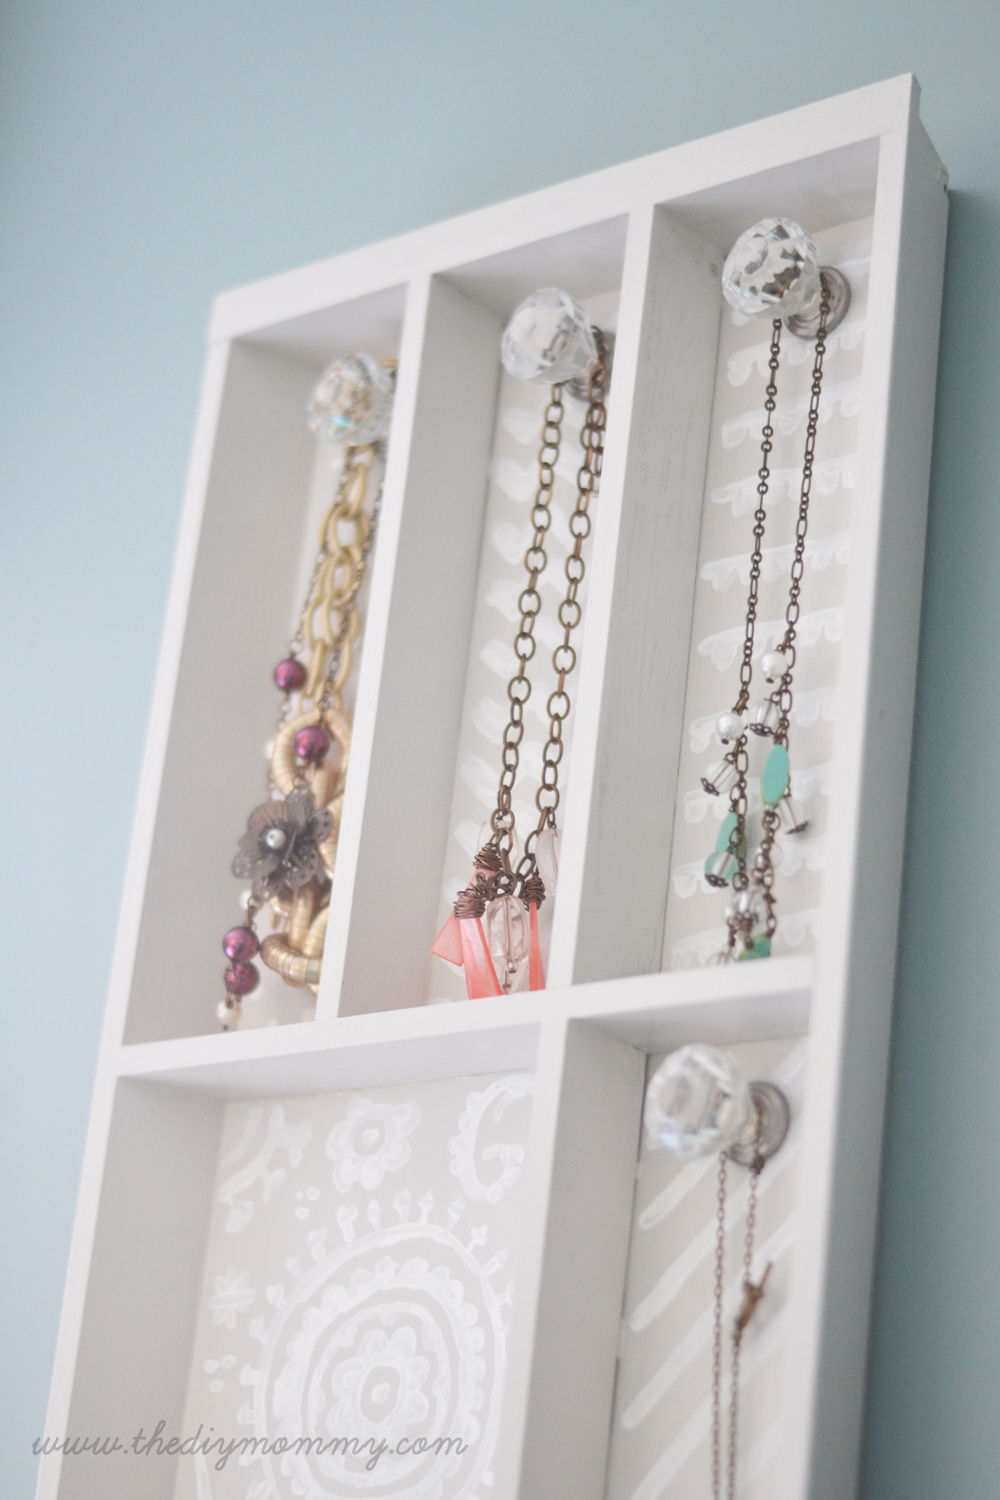 Jewelry Organizer Diy Make A Jewelry Holder From A Cutlery Tray The Diy Mommy